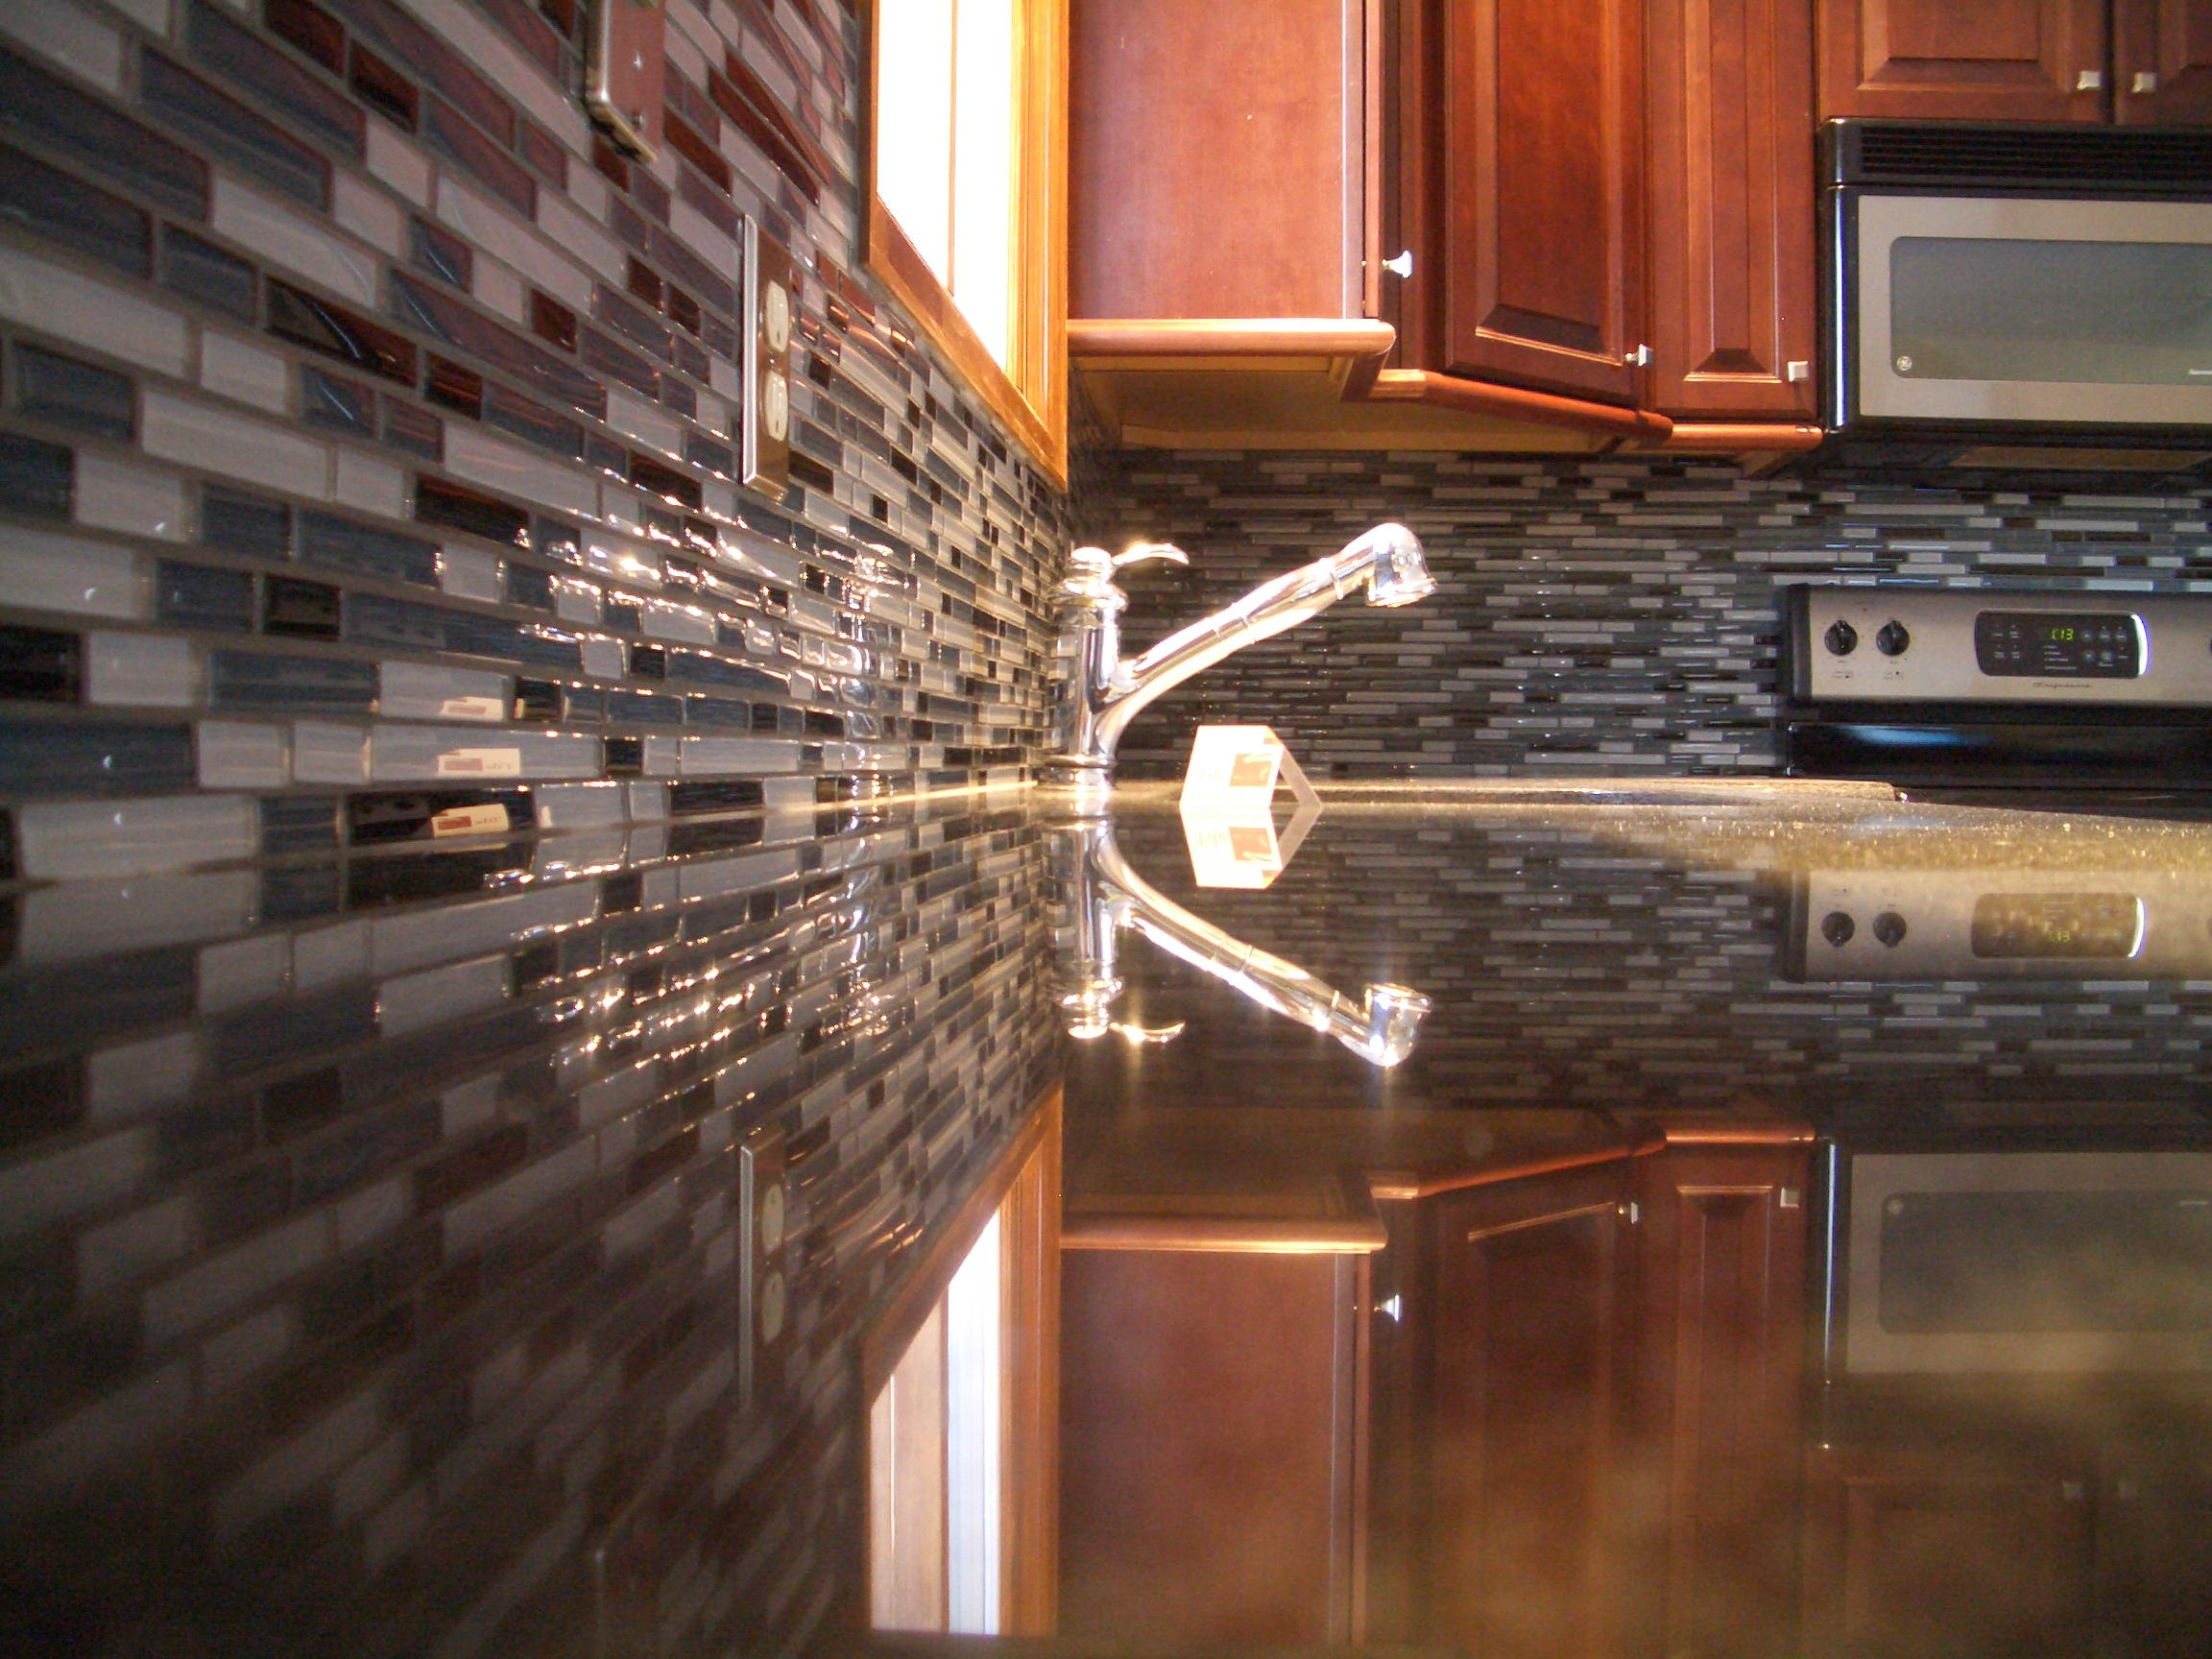 backsplash as a gift and we will schedule the installation at the